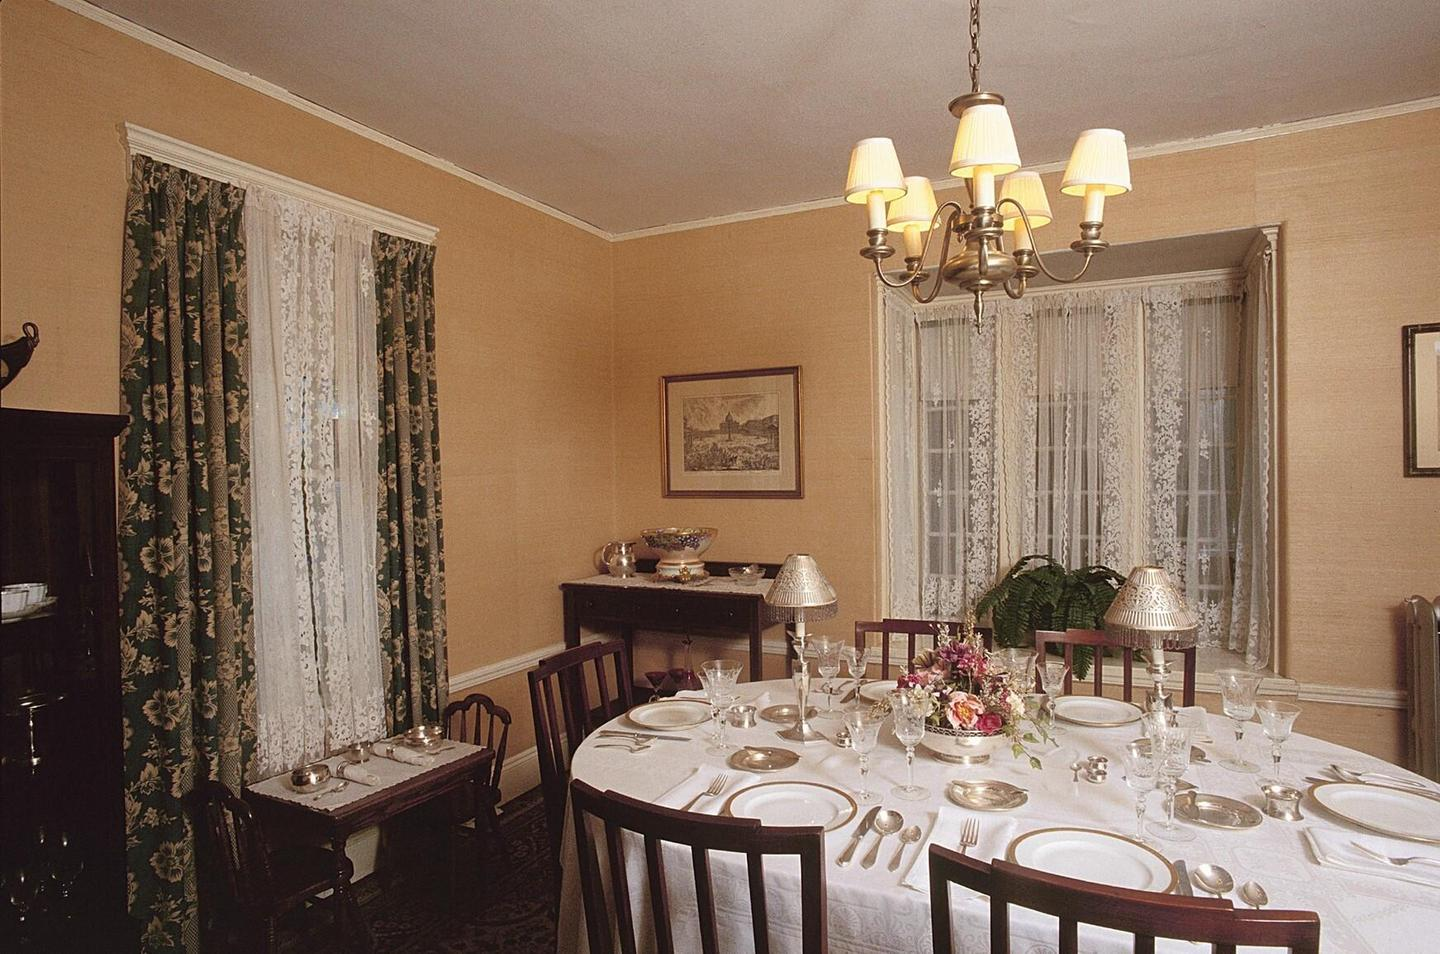 Kennedy Dining RoomThe dining table is set with the fine china and silver that Rose Kennedy received as a wedding present.